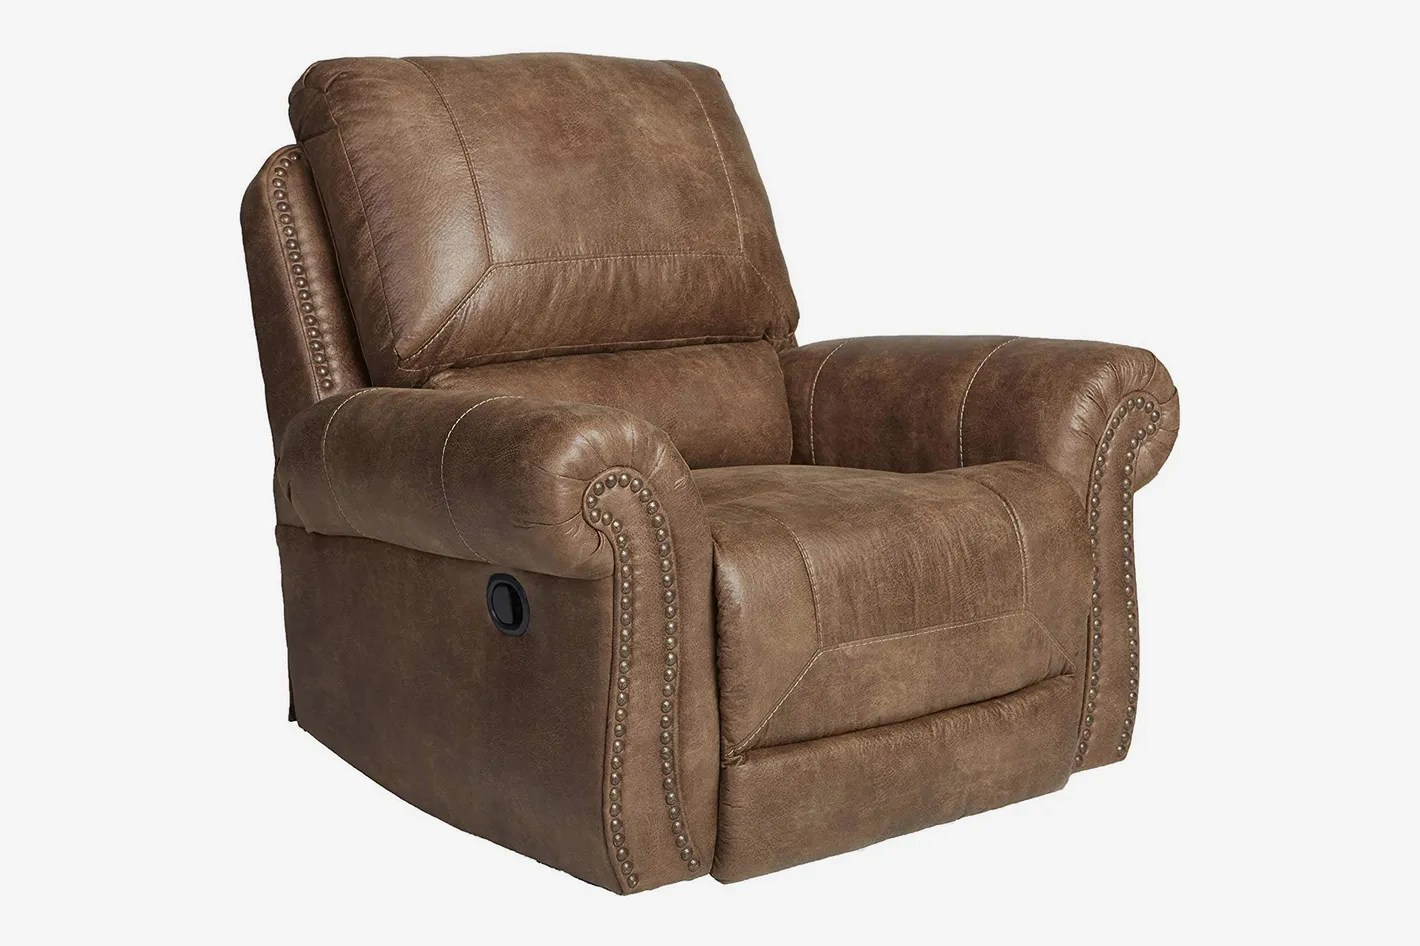 Discount Leather Chairs 9 Best Leather Recliners 2018